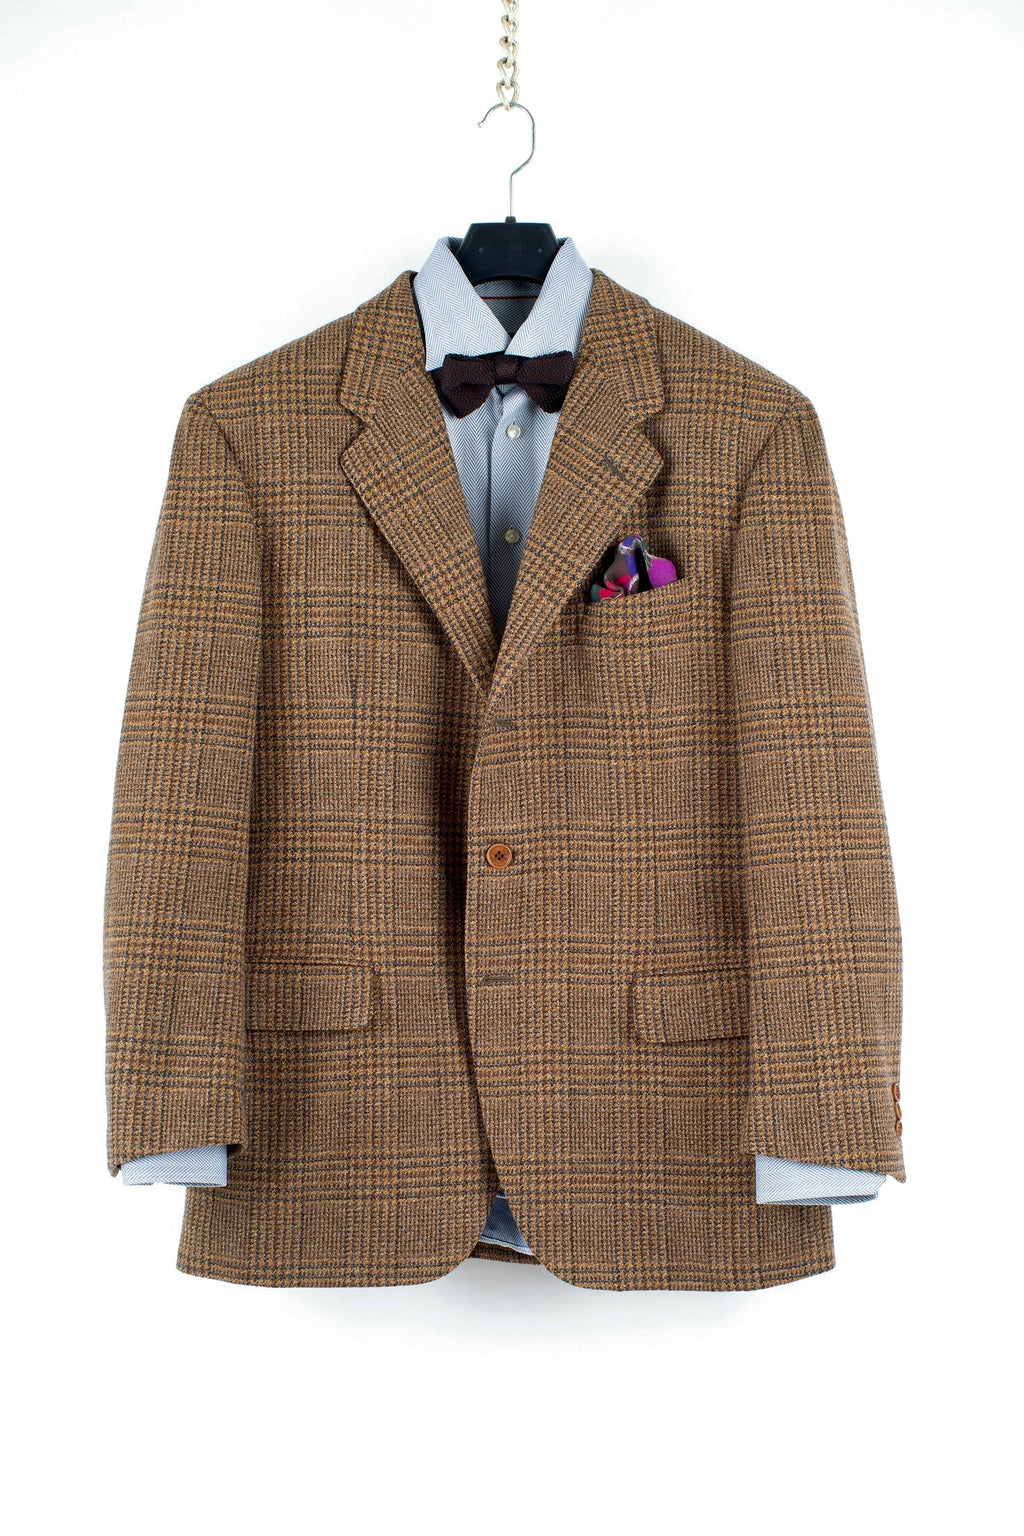 Salvatore Ferragamo Tweed Wool Glen Plaid Brown 3 Button Blazer, US 42R, EU 52R